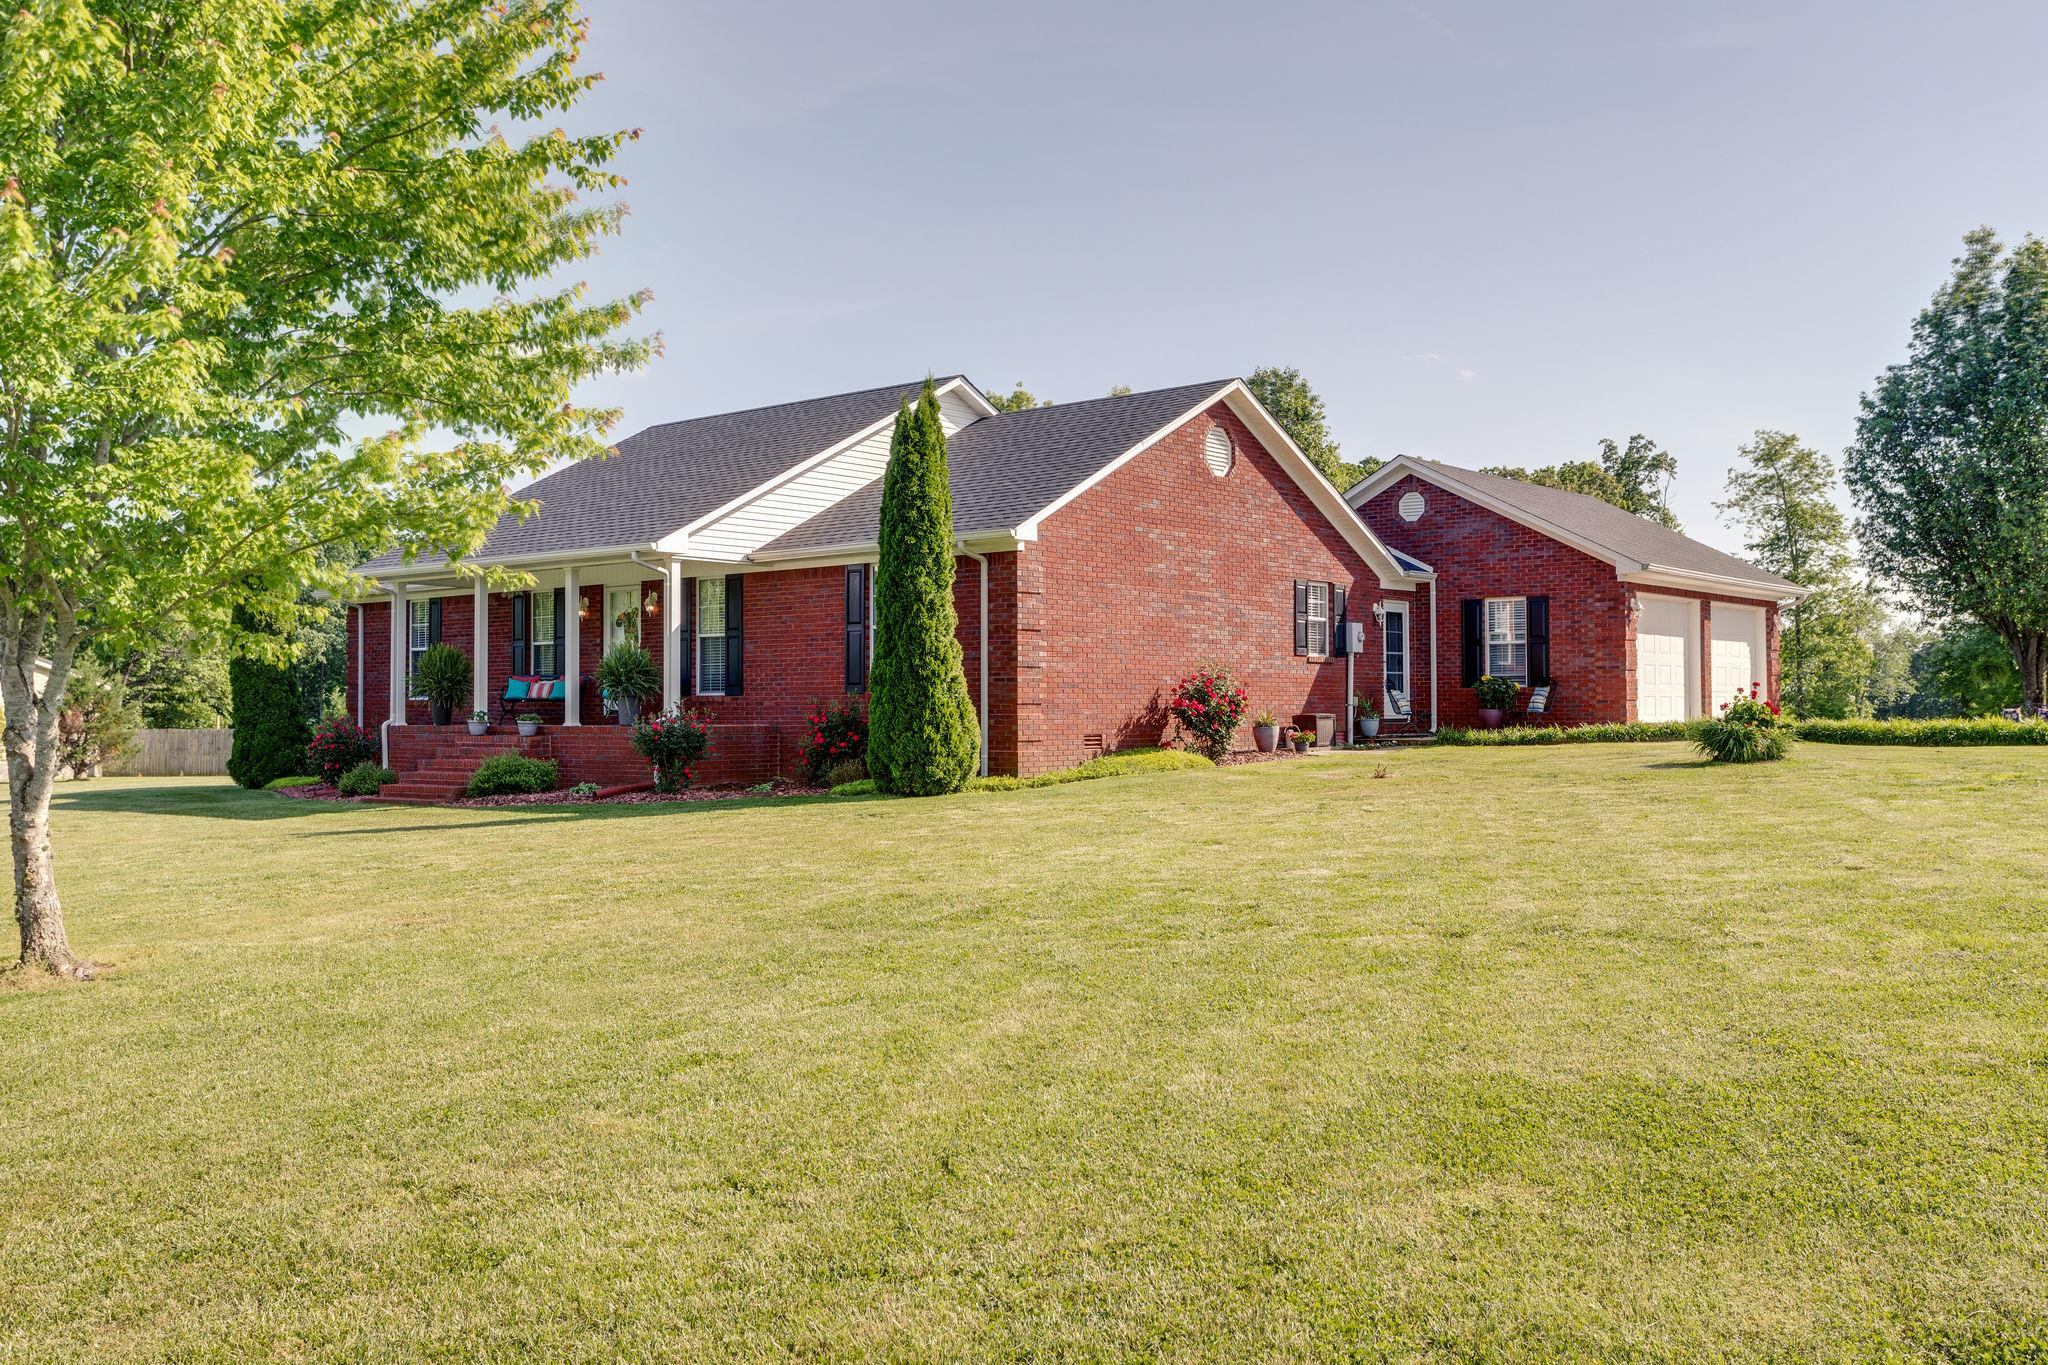 140 Mrs Gower Rd, Lawrenceburg, TN 38464 - Lawrenceburg, TN real estate listing